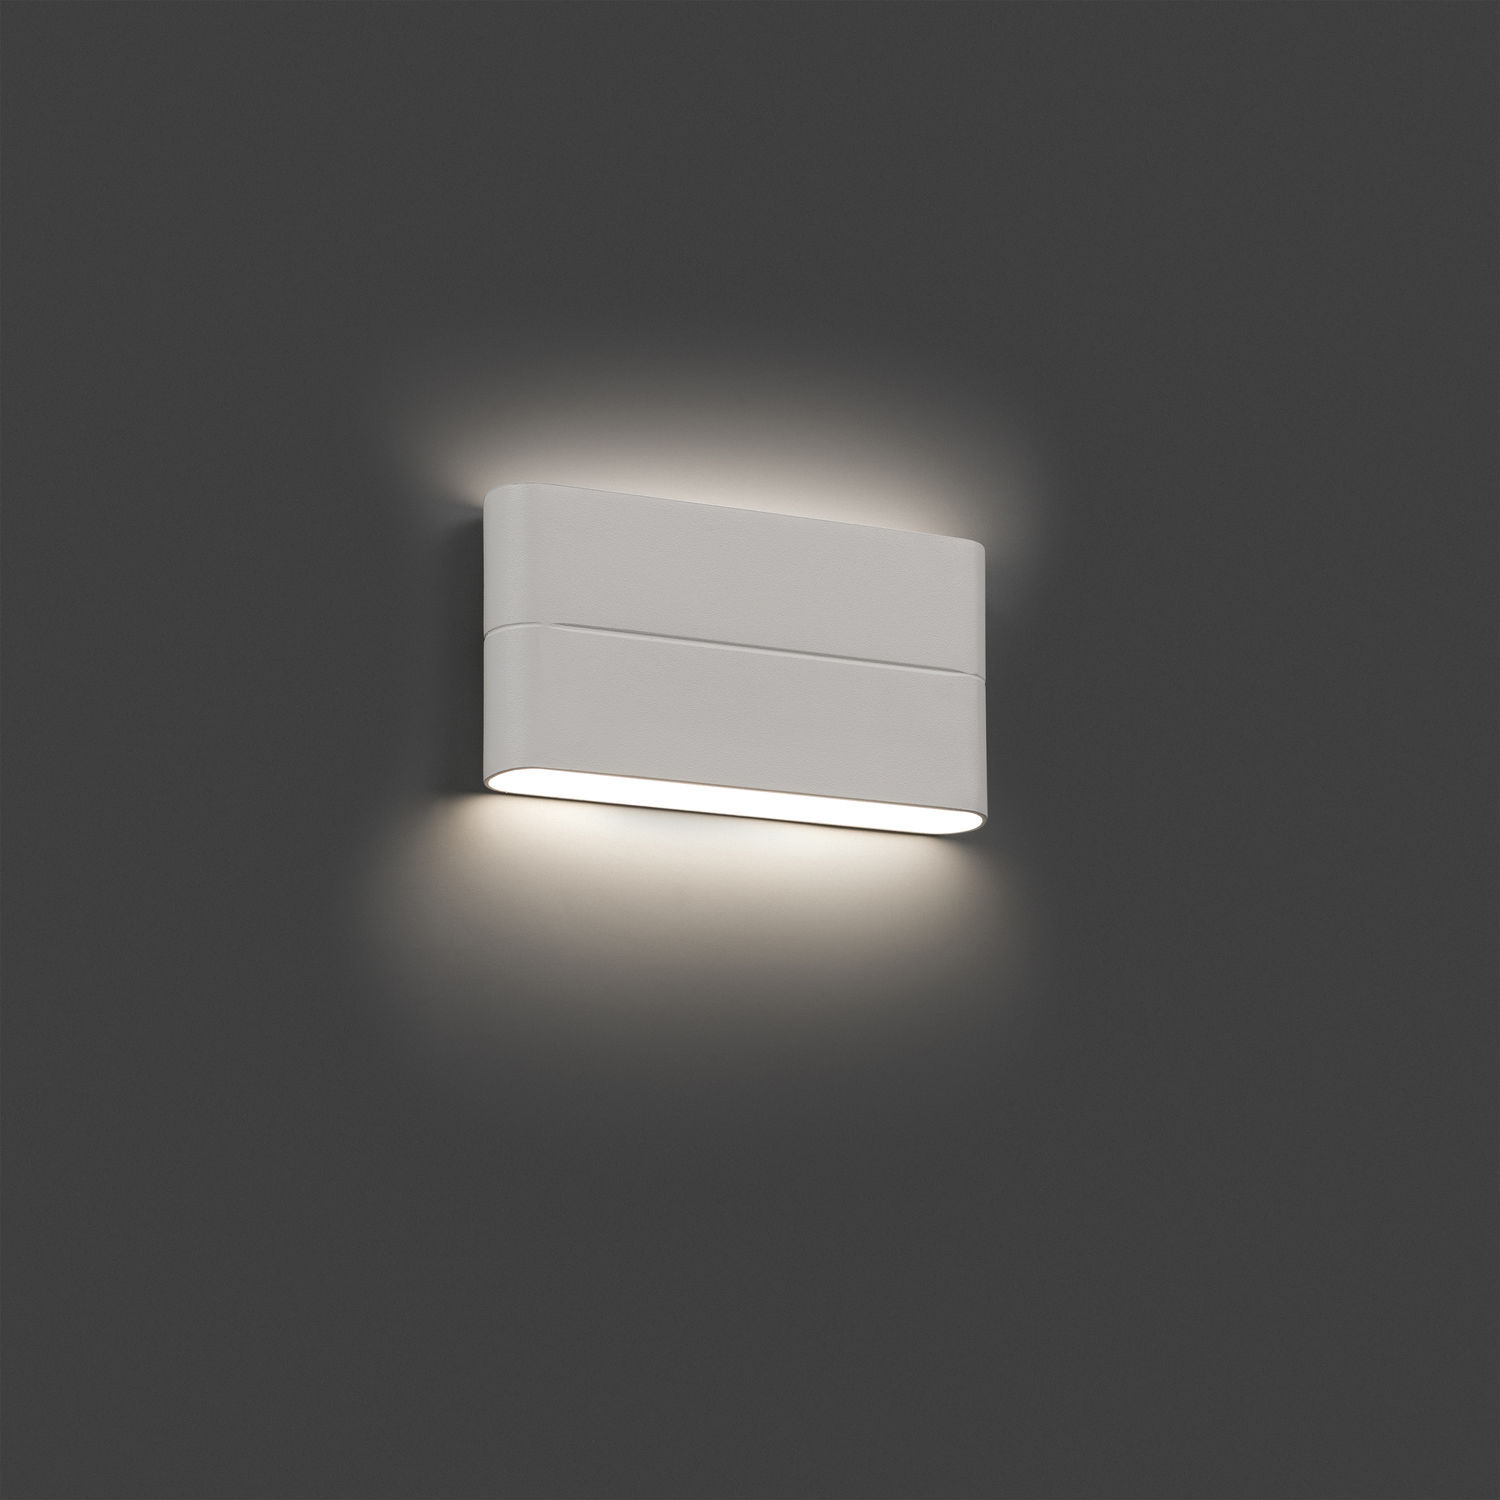 Applique murale d 39 ext rieur aday 2 led ip54 blanc l17 for Applique murale exterieure led